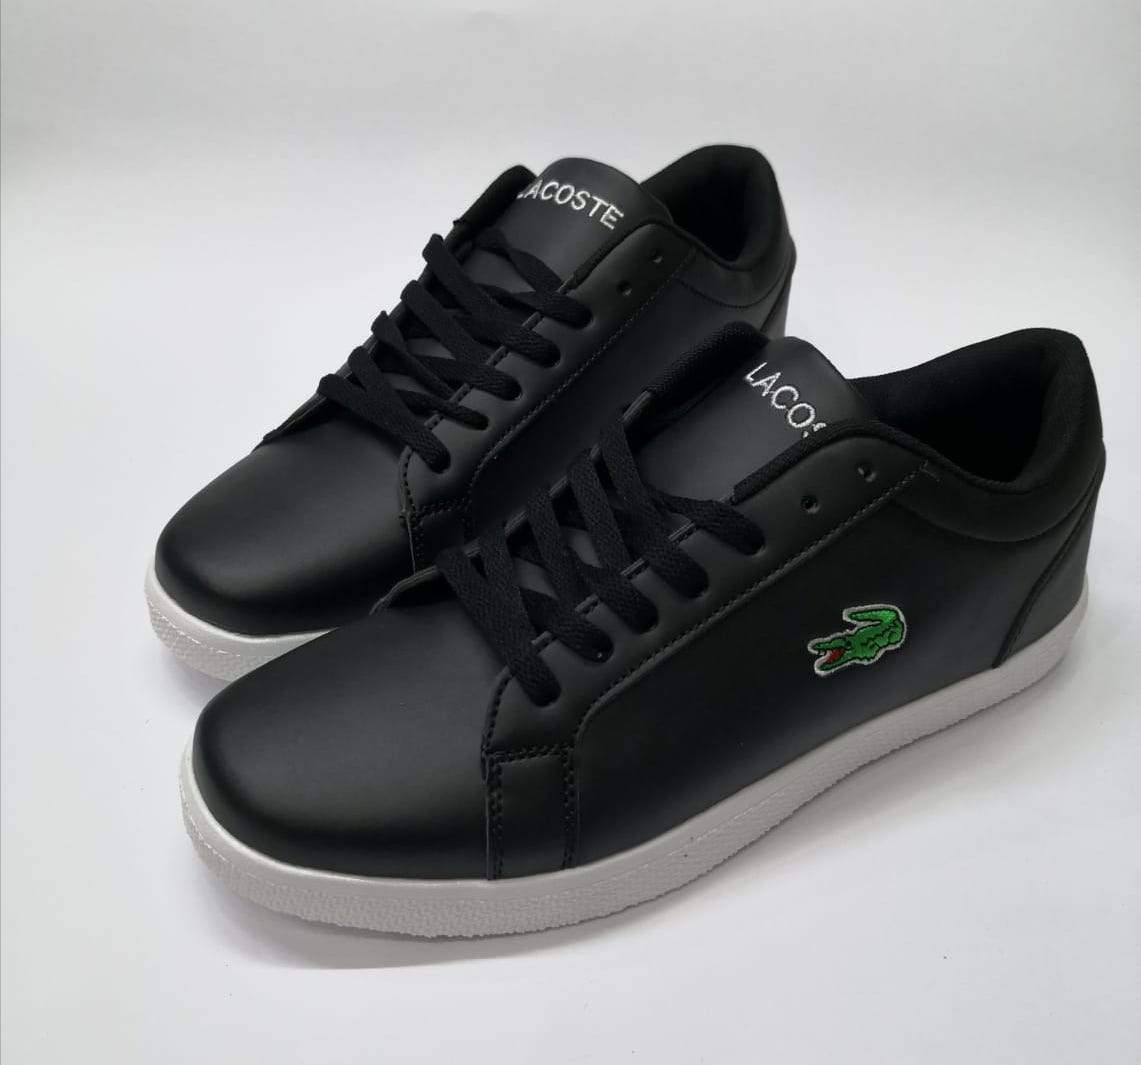 LACOSTE Lerond BL Black Sneakers for Men